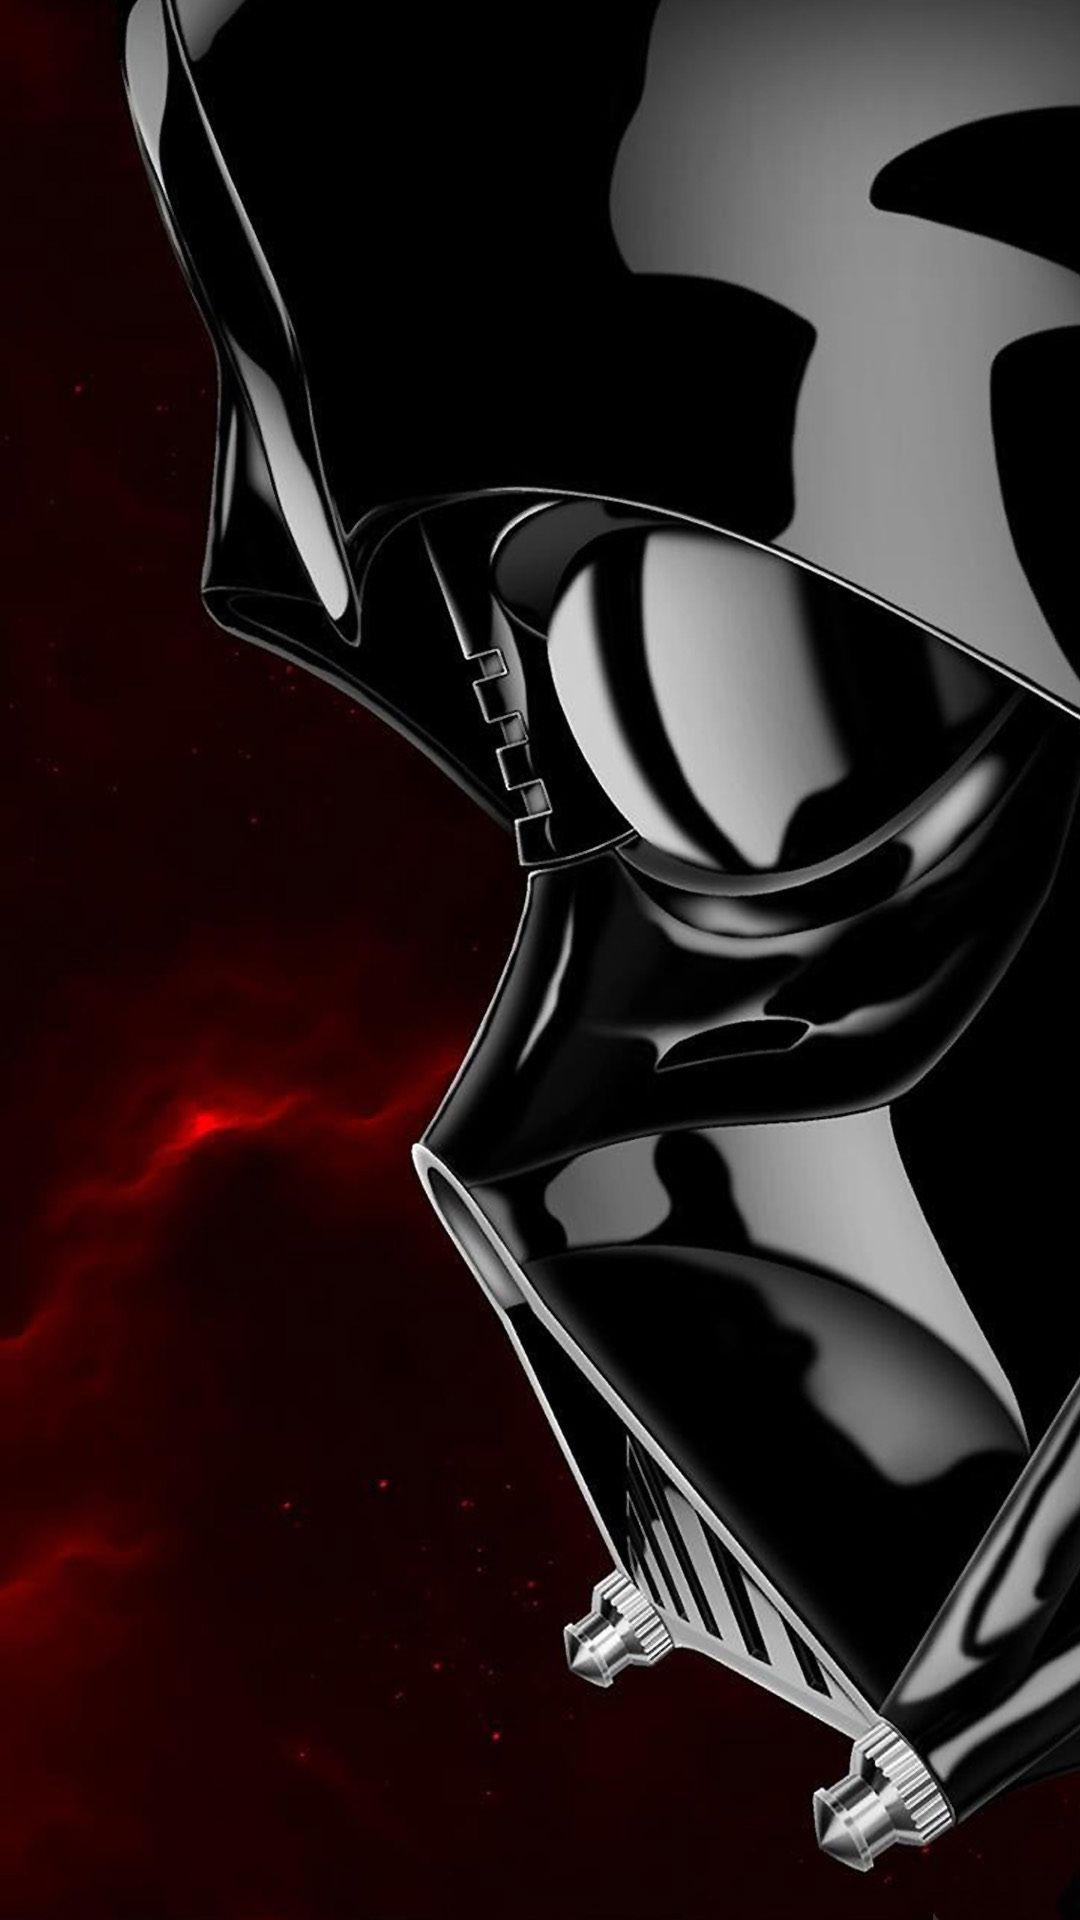 Darth Vader Star Wars Star Wars Illustration Iphone 6 Wallpaper Download Iphone Wallpapers Ipad Star Wars Illustration Star Wars Wallpaper Vader Star Wars